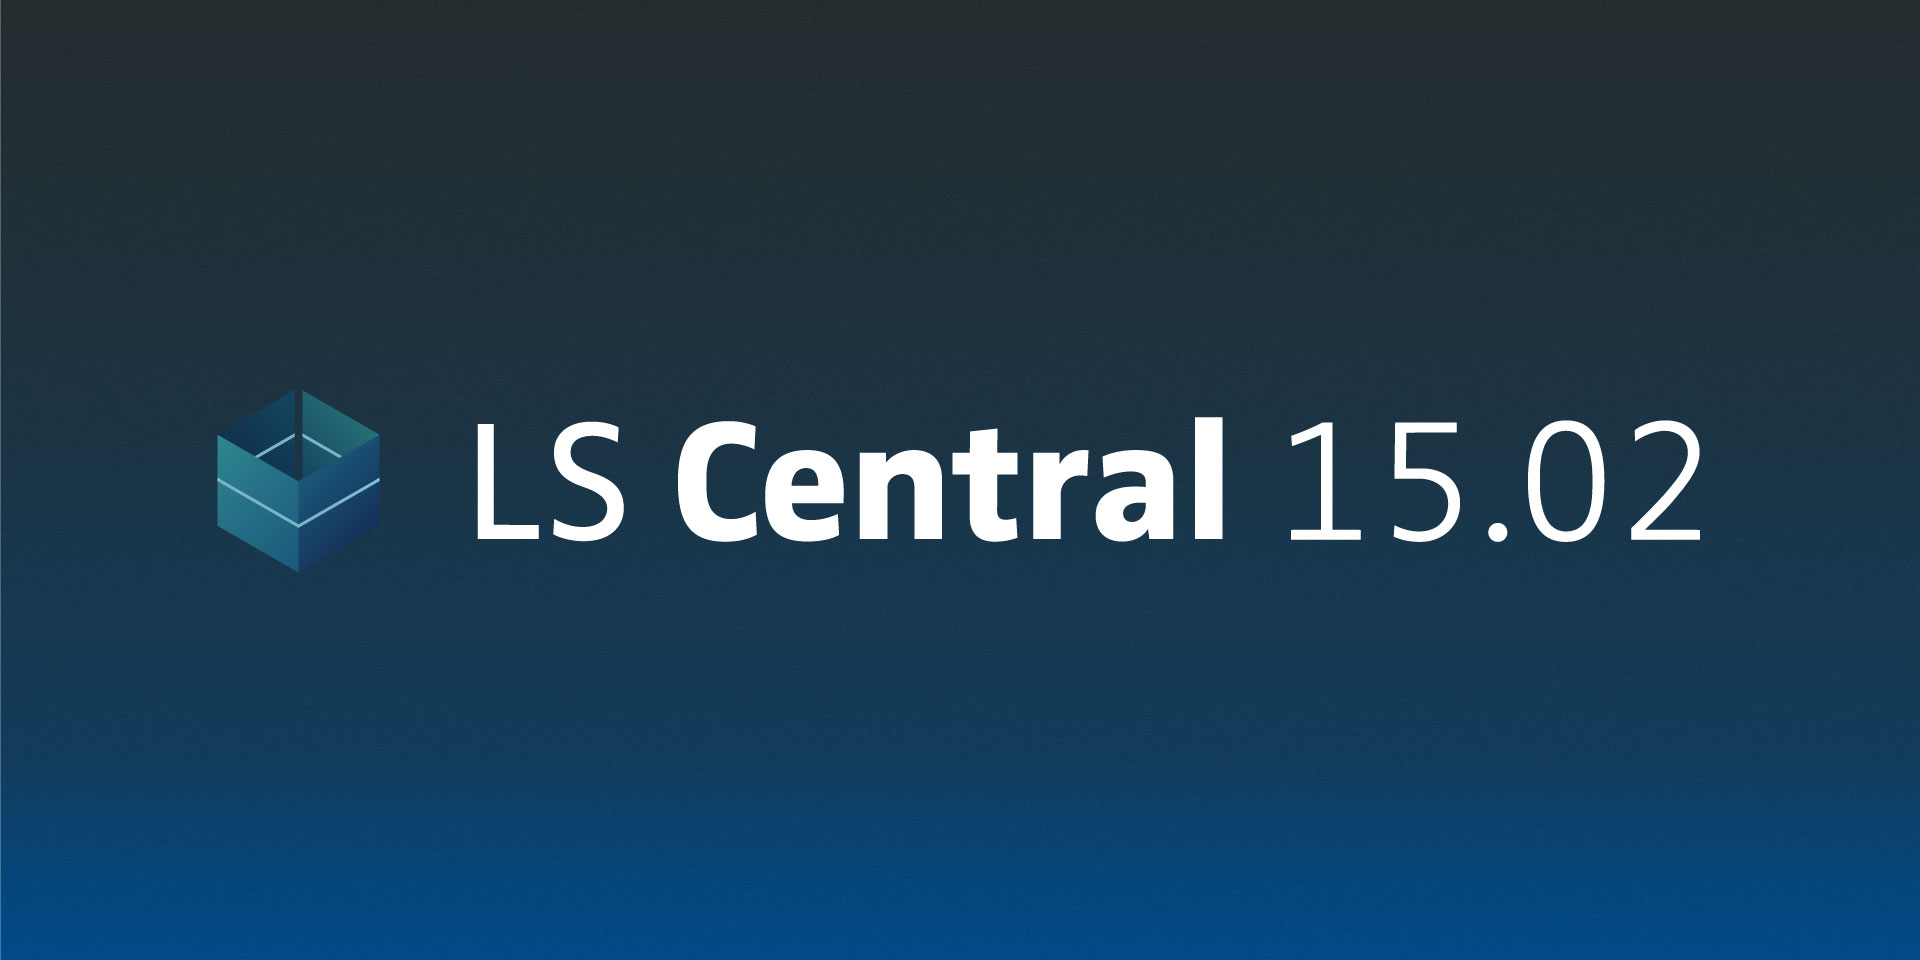 LS Central 15.02: Enhanced mobile inventory, more options to manage retail budgets, new panel in the KDS